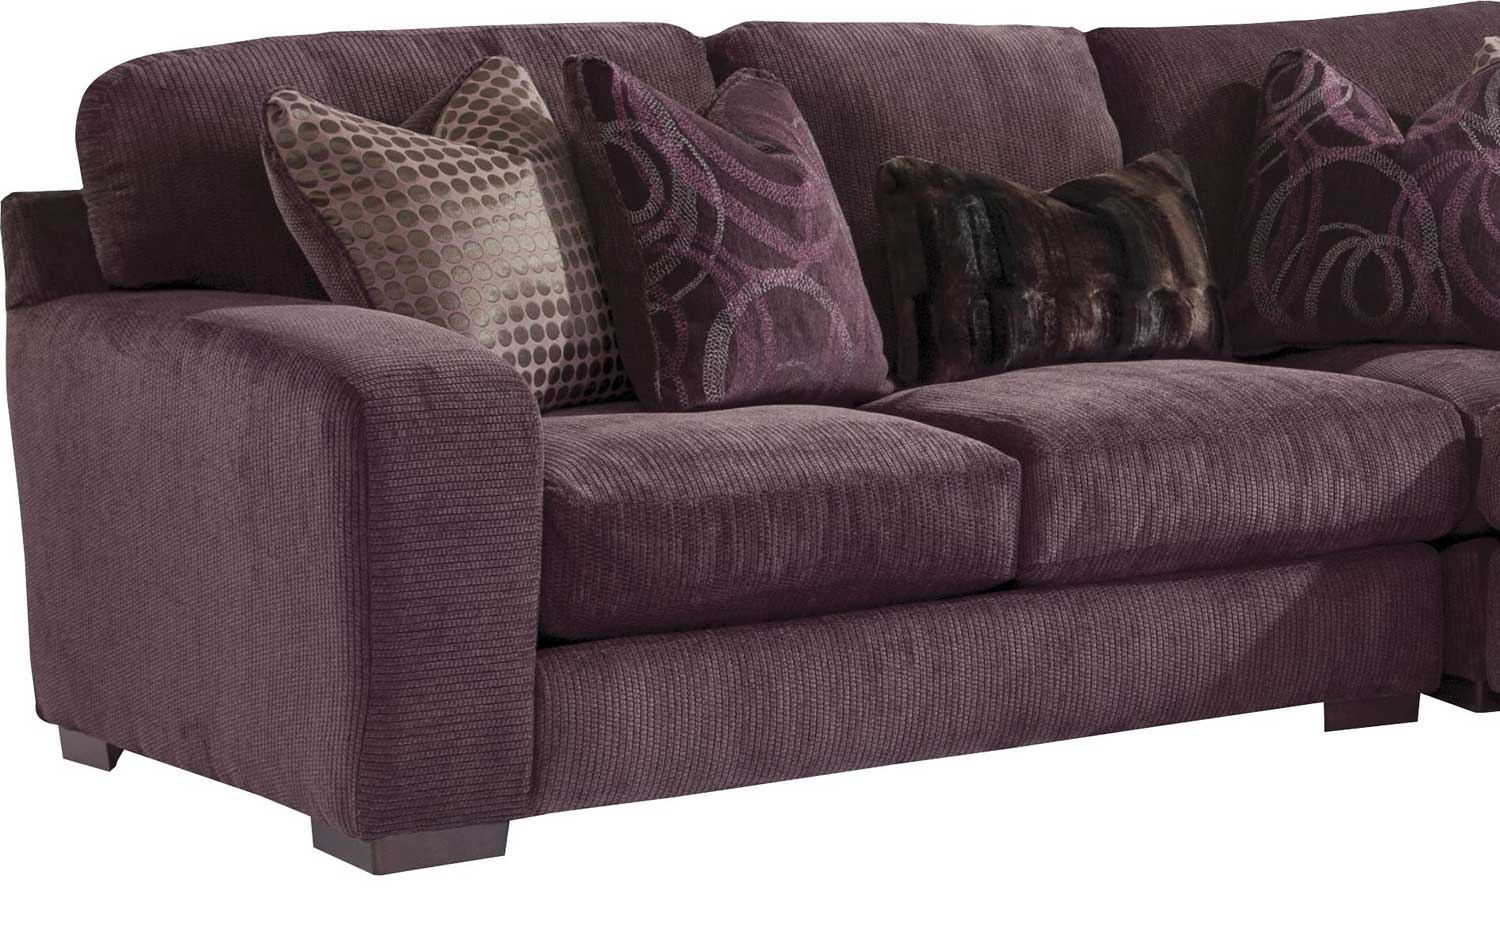 Jackson Serena Sectional Sofa Set Plum Jf 3276 Sect Set